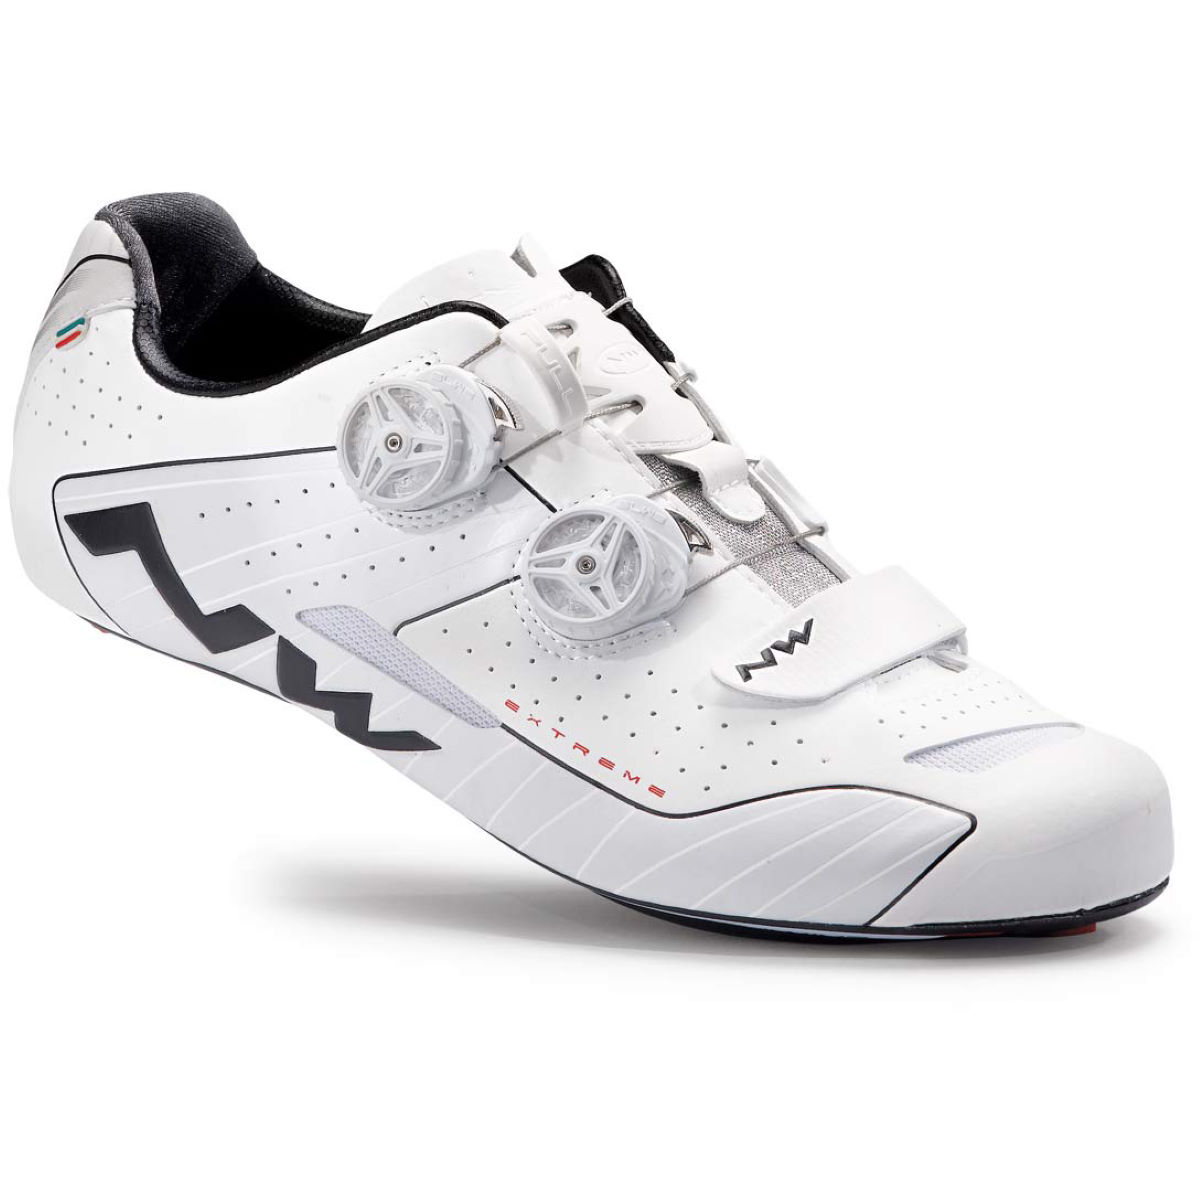 Chaussures de route Northwave Extreme Reflective - 40 Blanc/Blanc